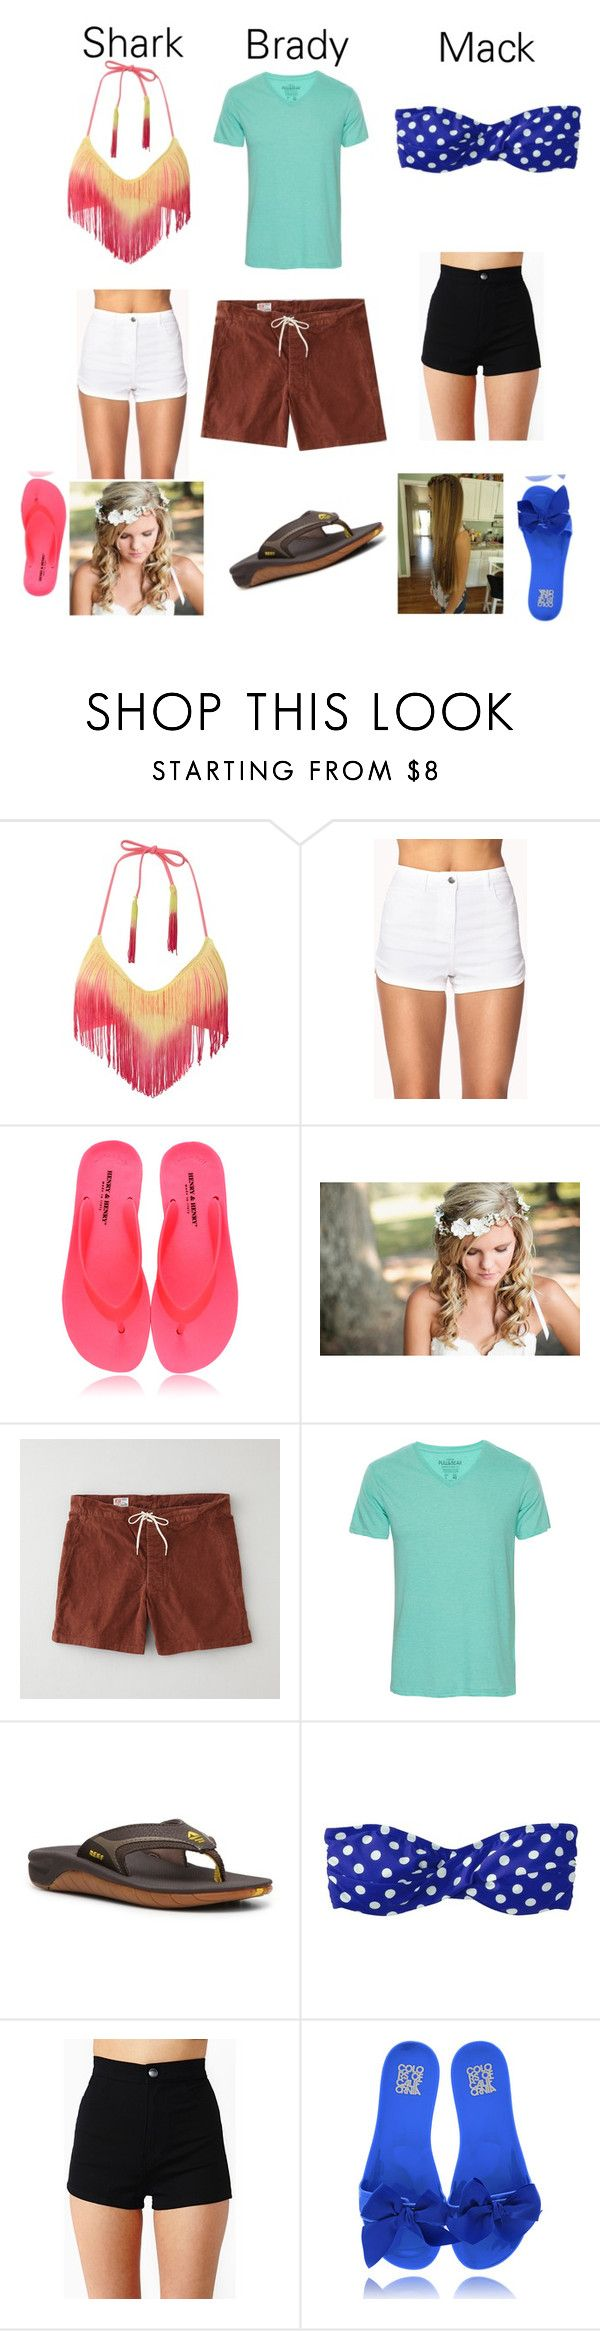 """""""wet side story"""" by mikaylalynch ❤ liked on Polyvore featuring The Bikini Lab, Forever 21, Timeless, M.NII, Pull&Bear, Reef, Mossimo and Colors Of California"""